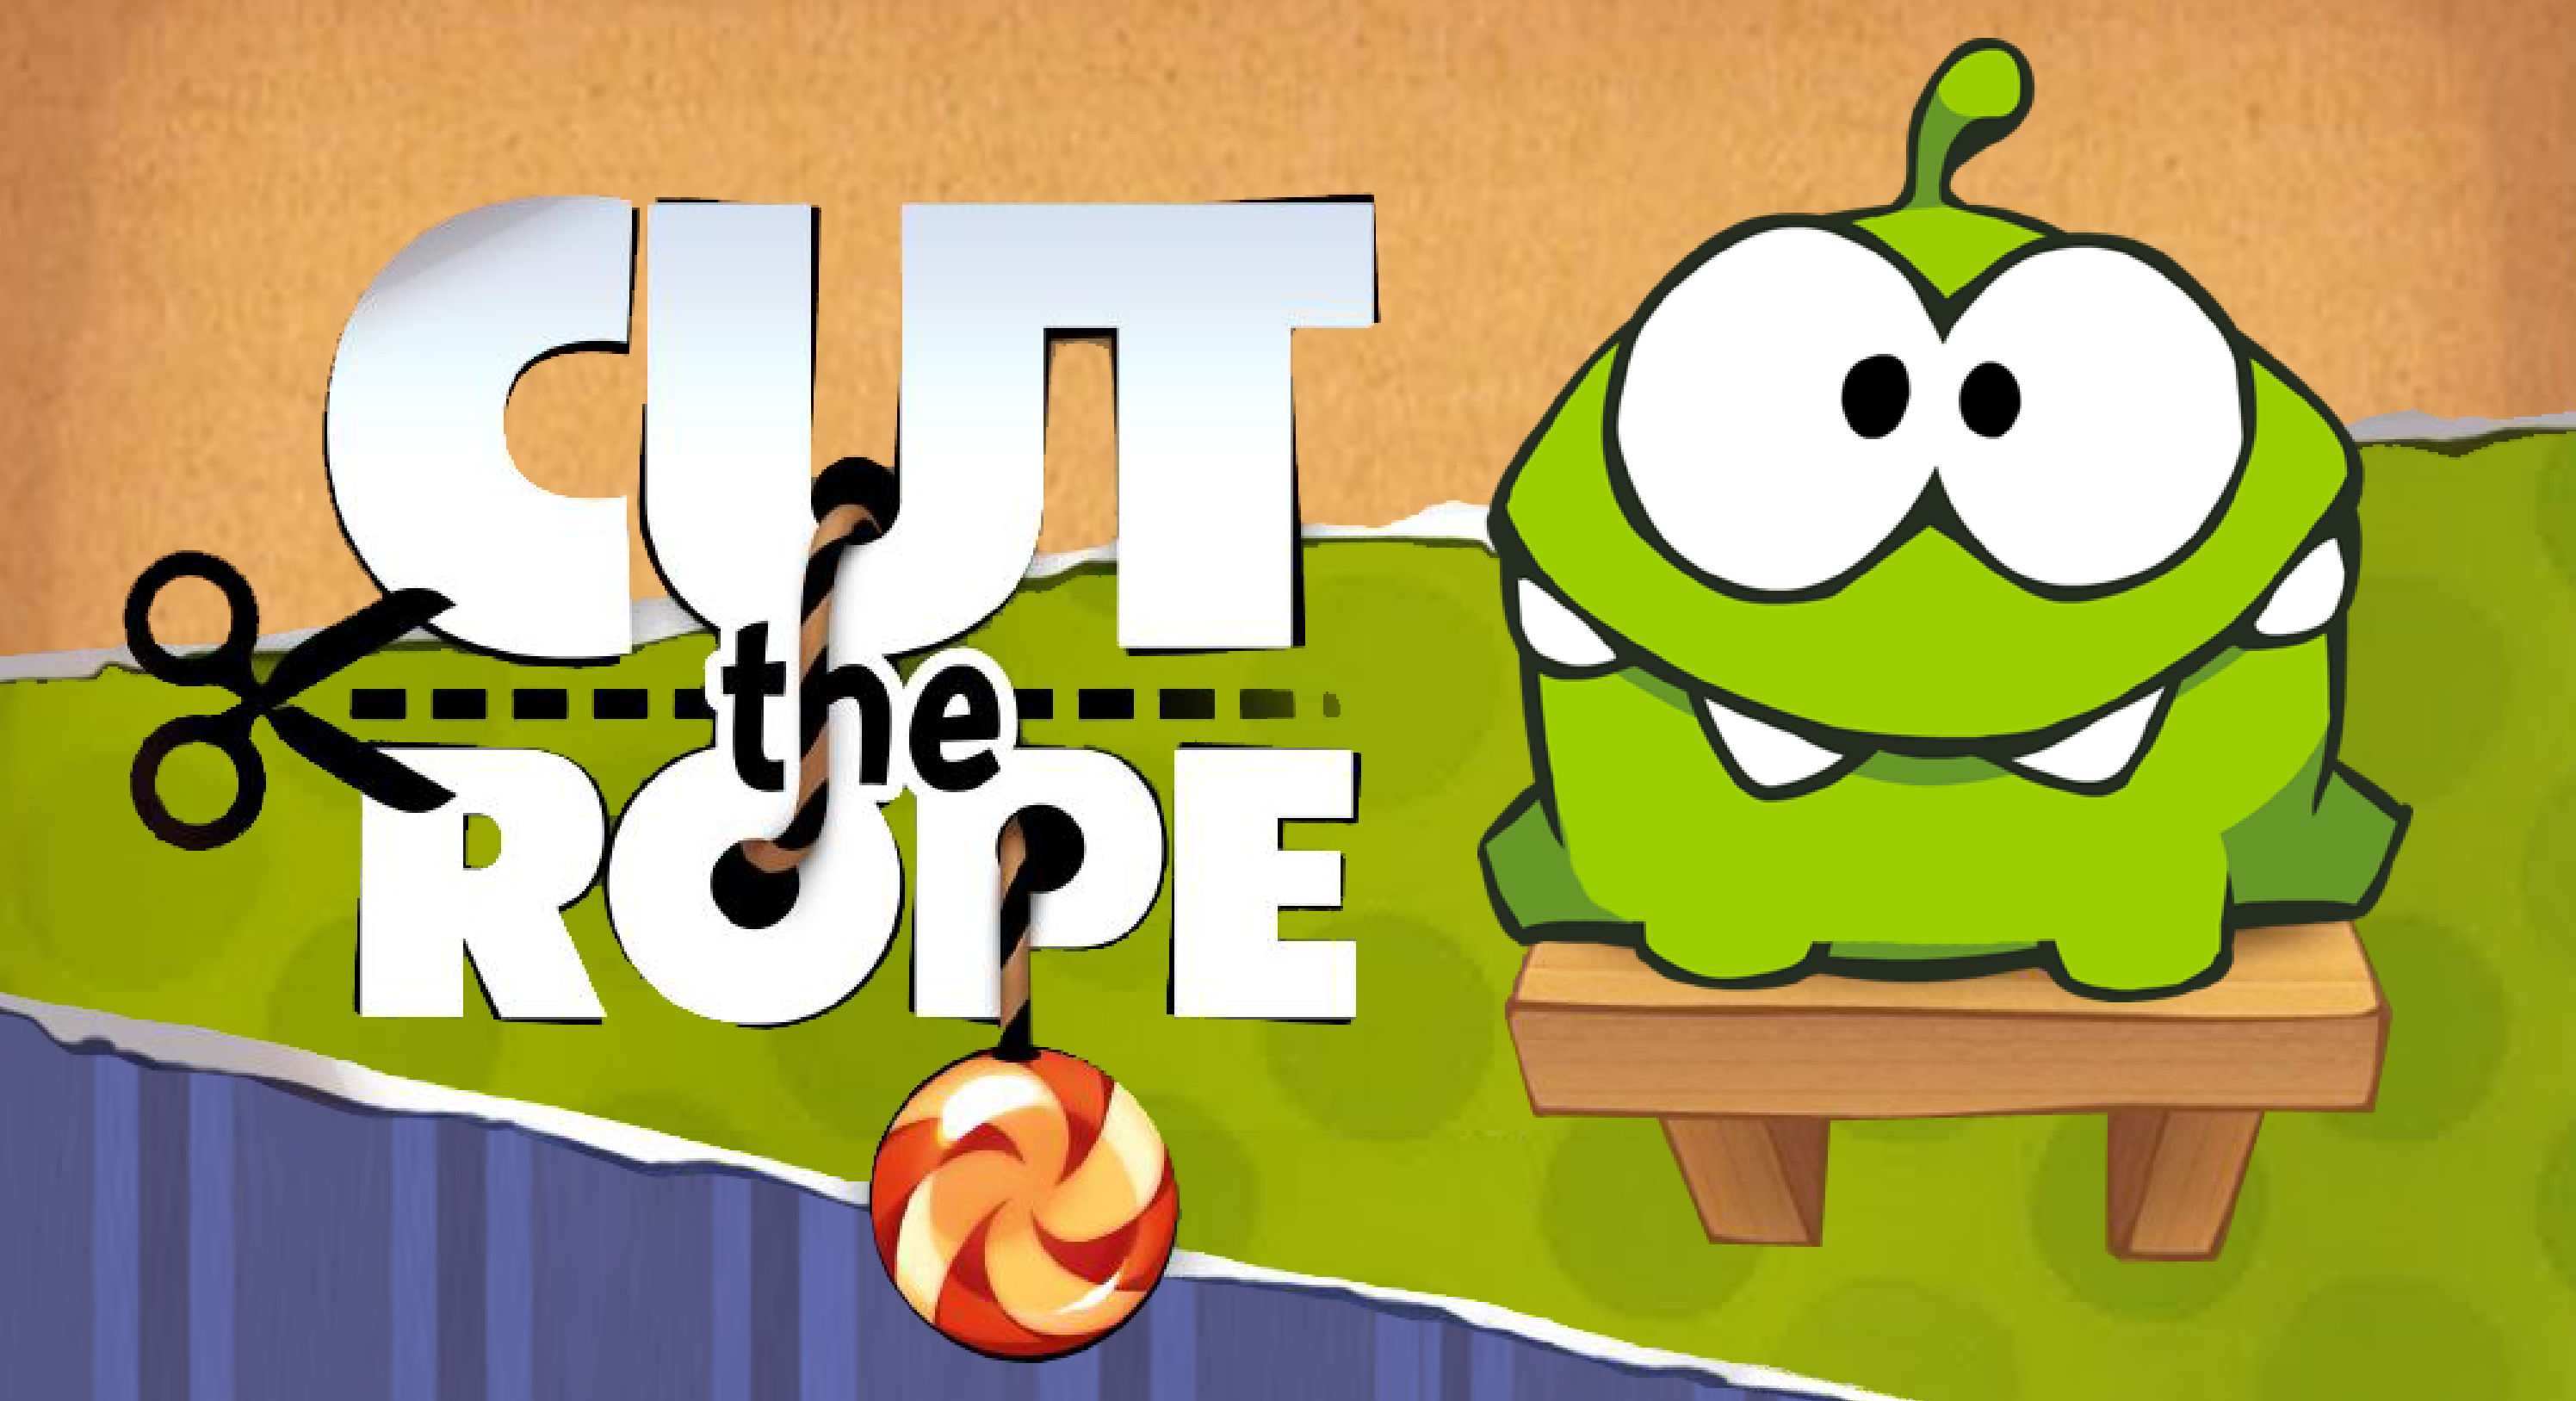 Cut the Rope #hry